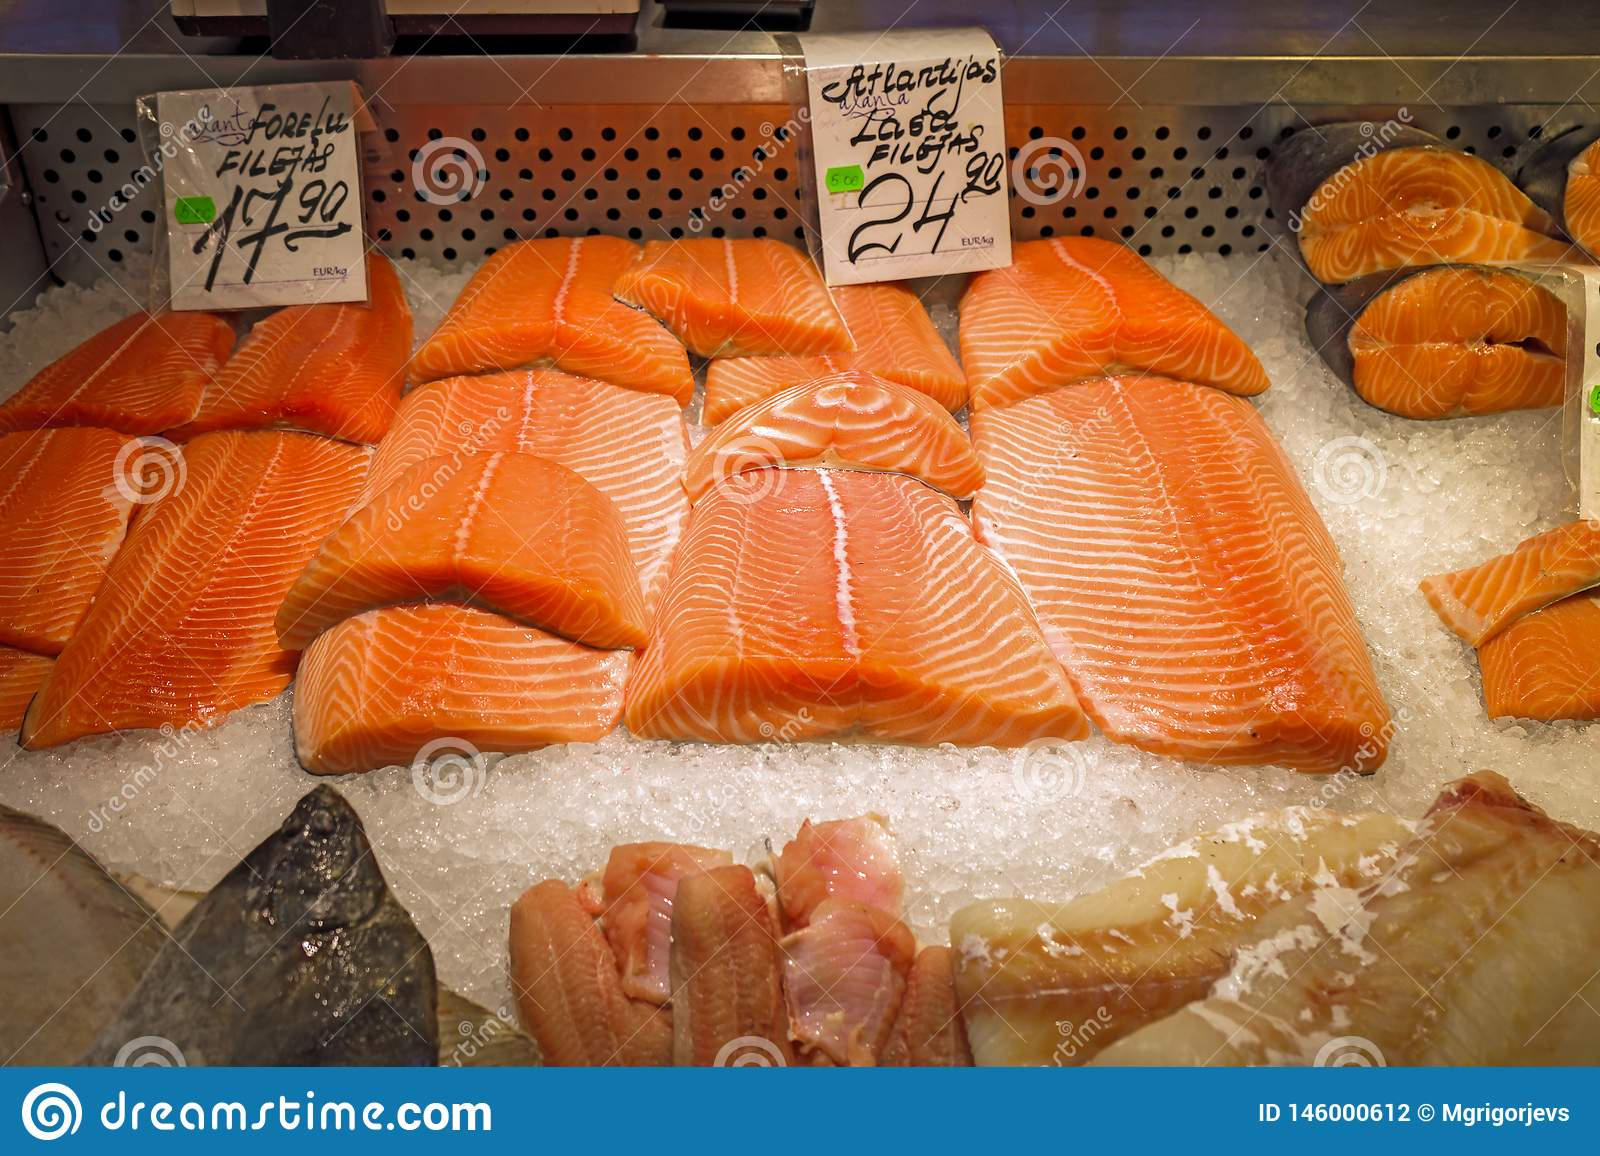 Fresh salmon fillets for sale on ice in supermarket store in fridge display. Red fish